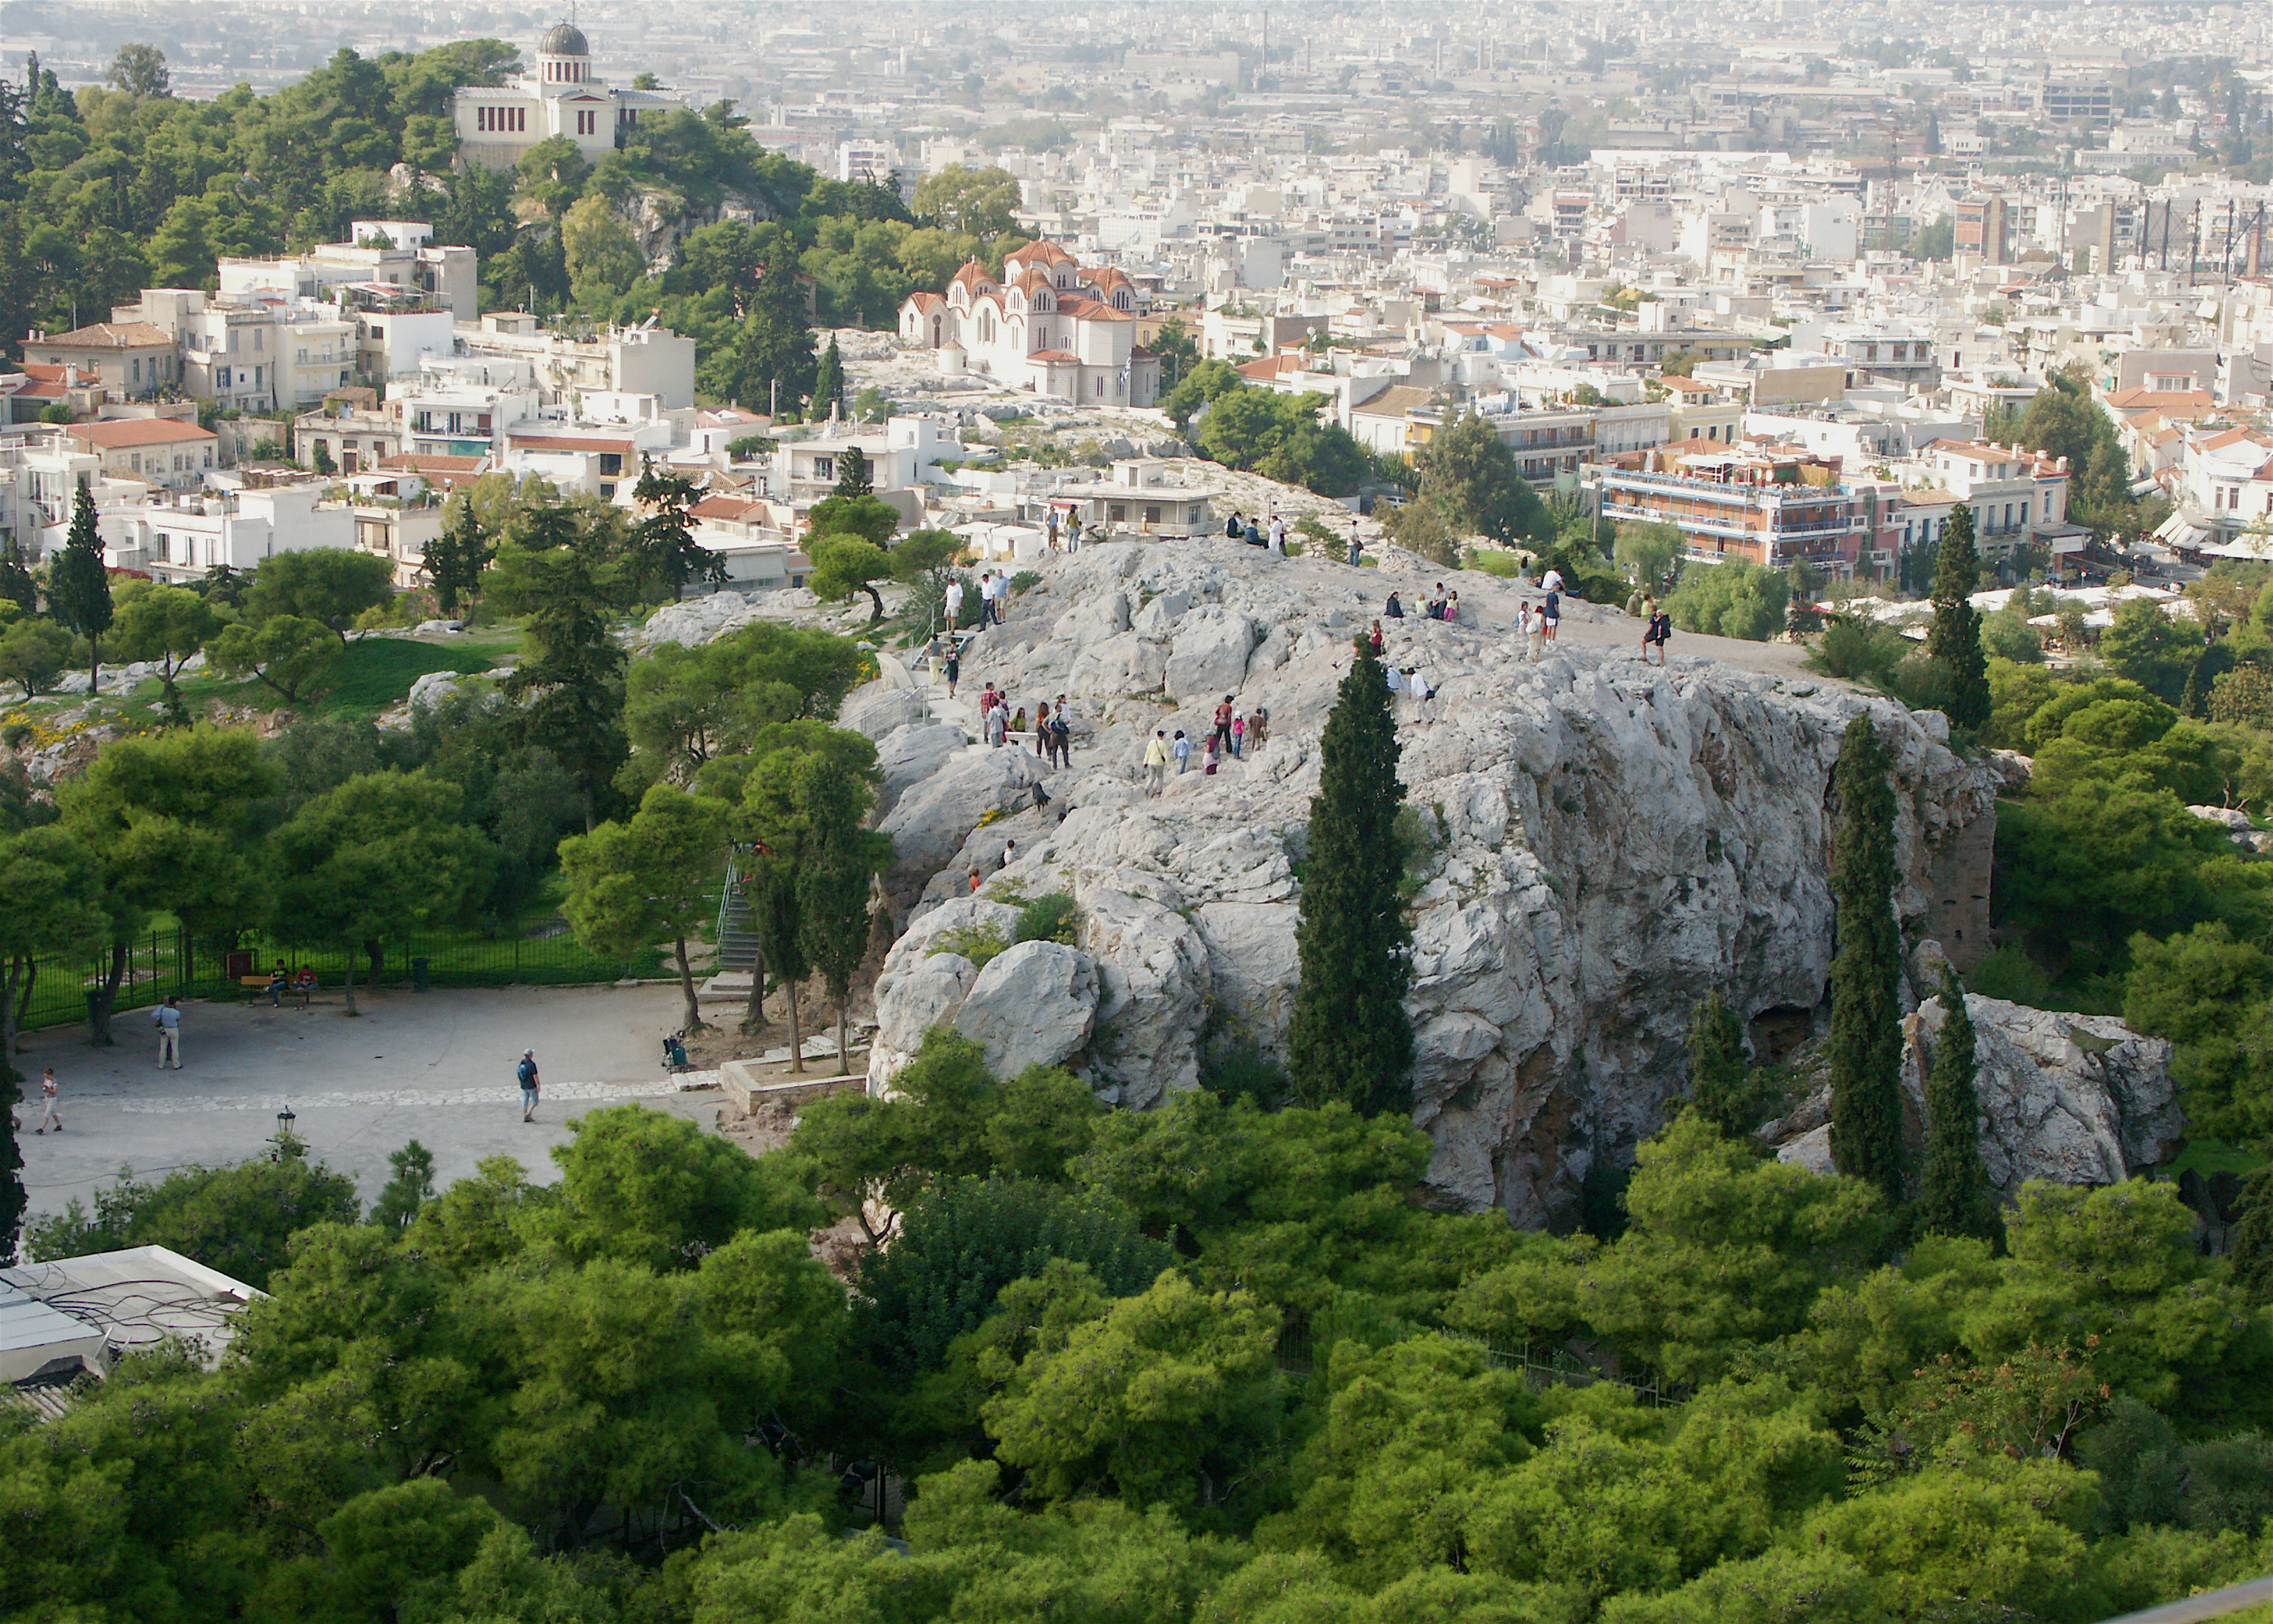 http://upload.wikimedia.org/wikipedia/commons/7/7e/Areopagus_from_the_Acropolis.jpg